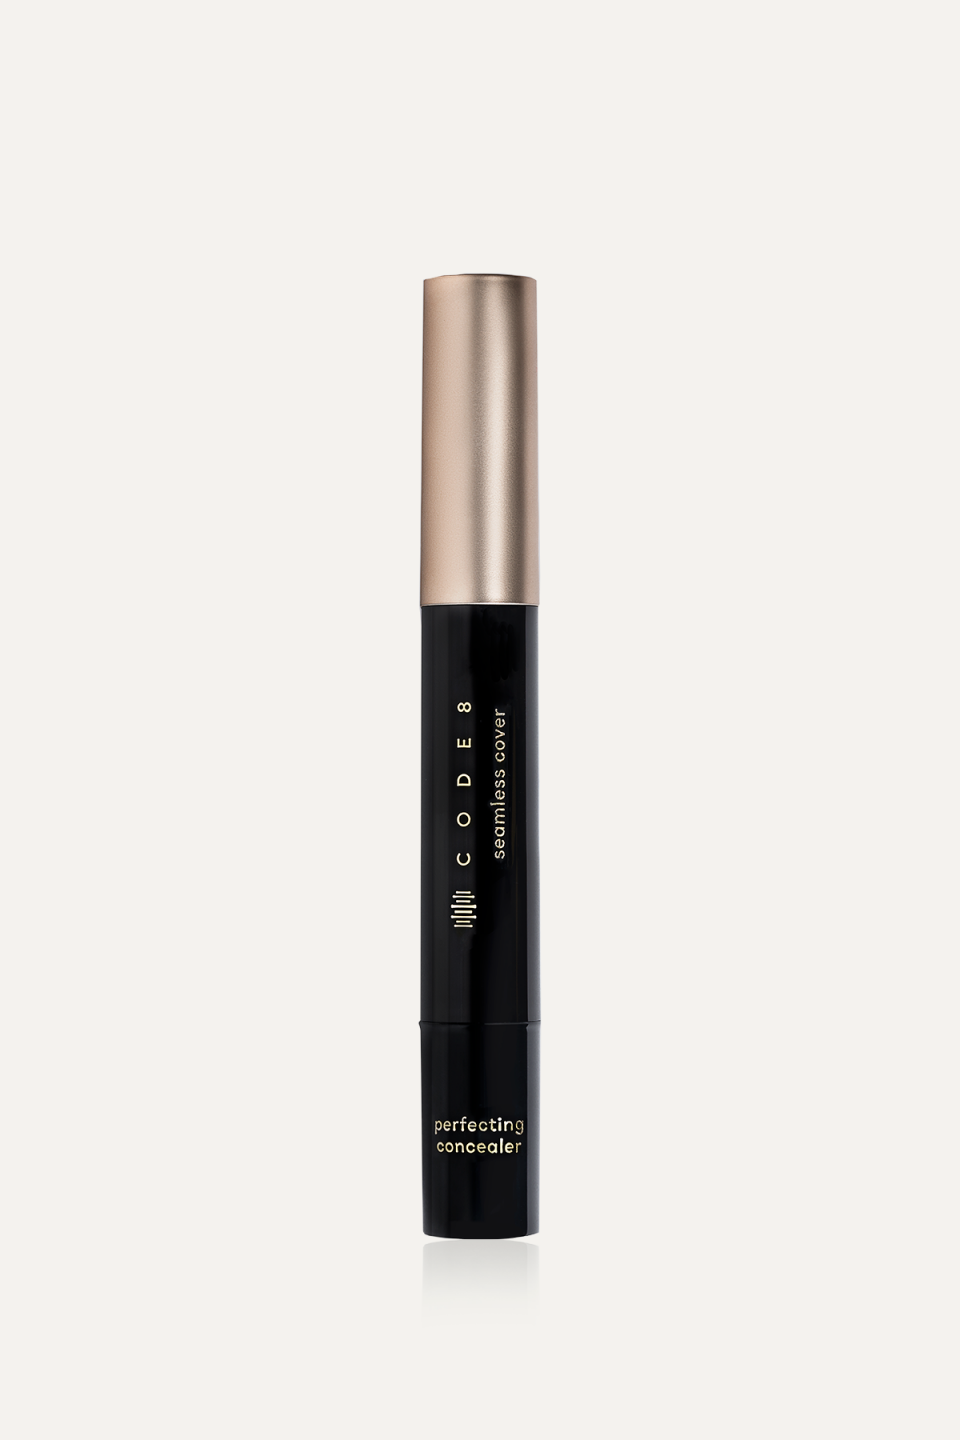 Code 8 Seamless Cover Liquid Concealer Shade NW15